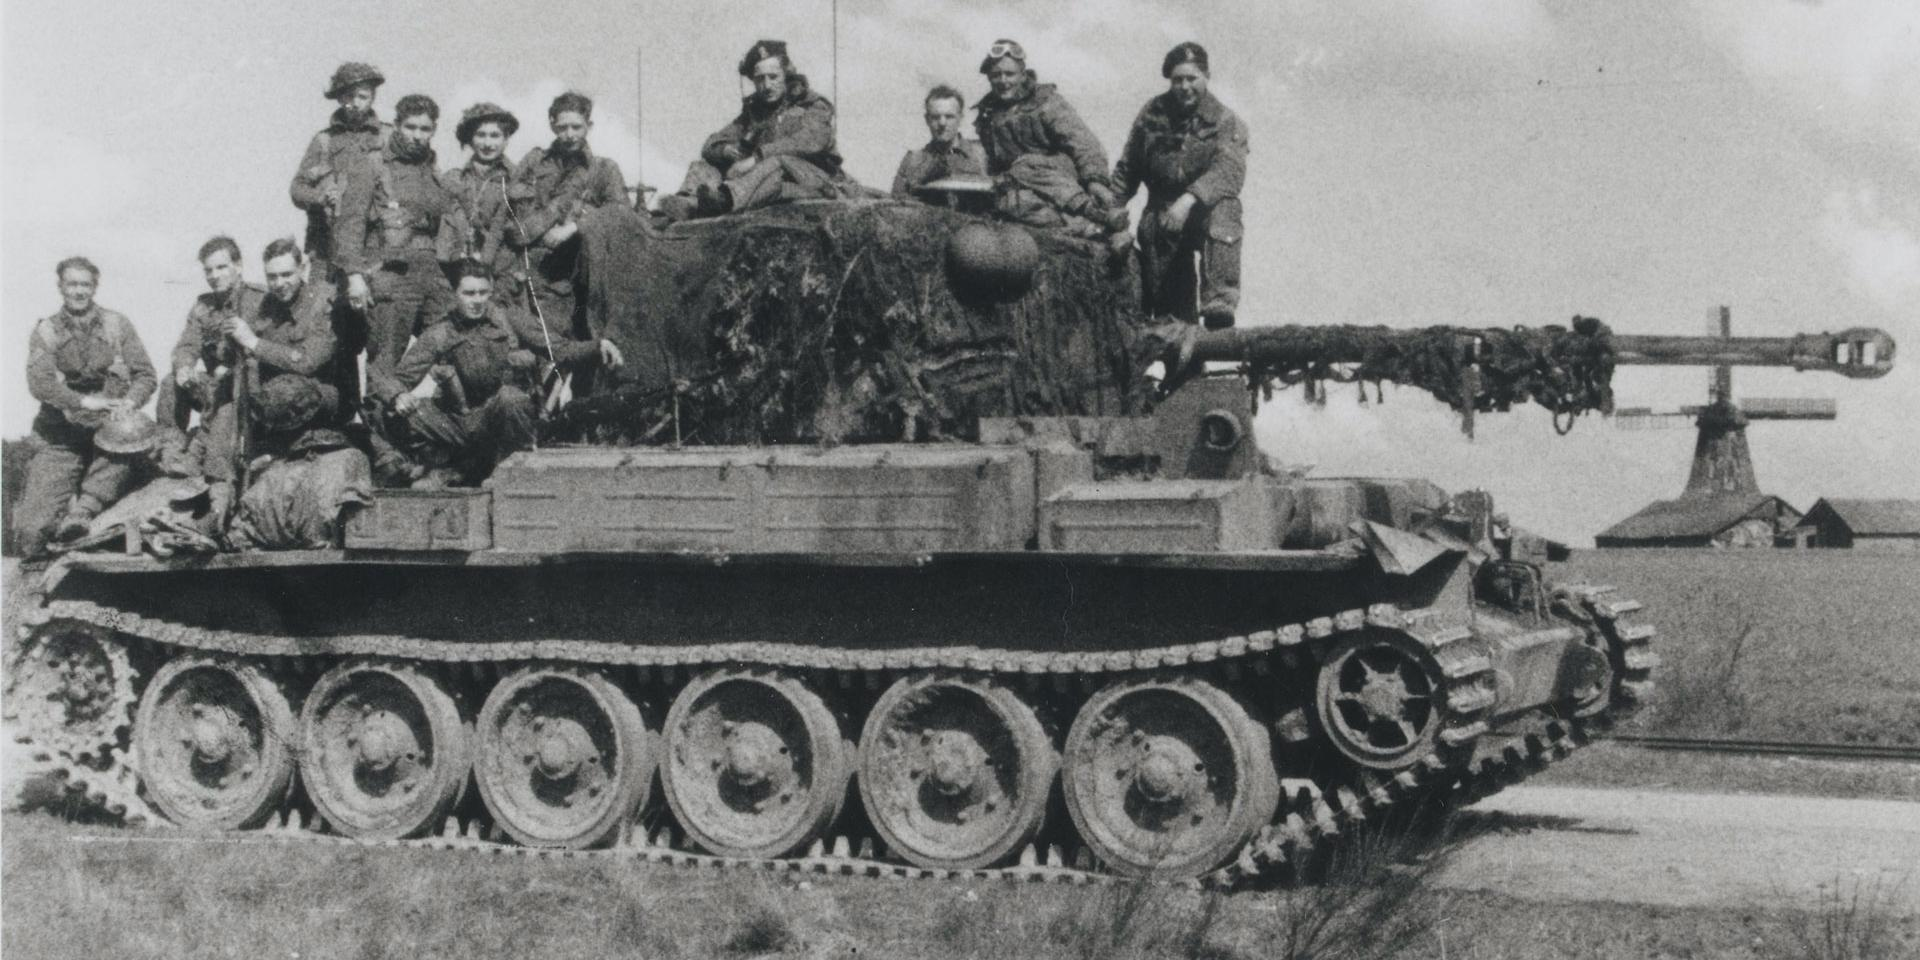 A Challenger tank of 5th/19th King's Royal Hussars, April 1945